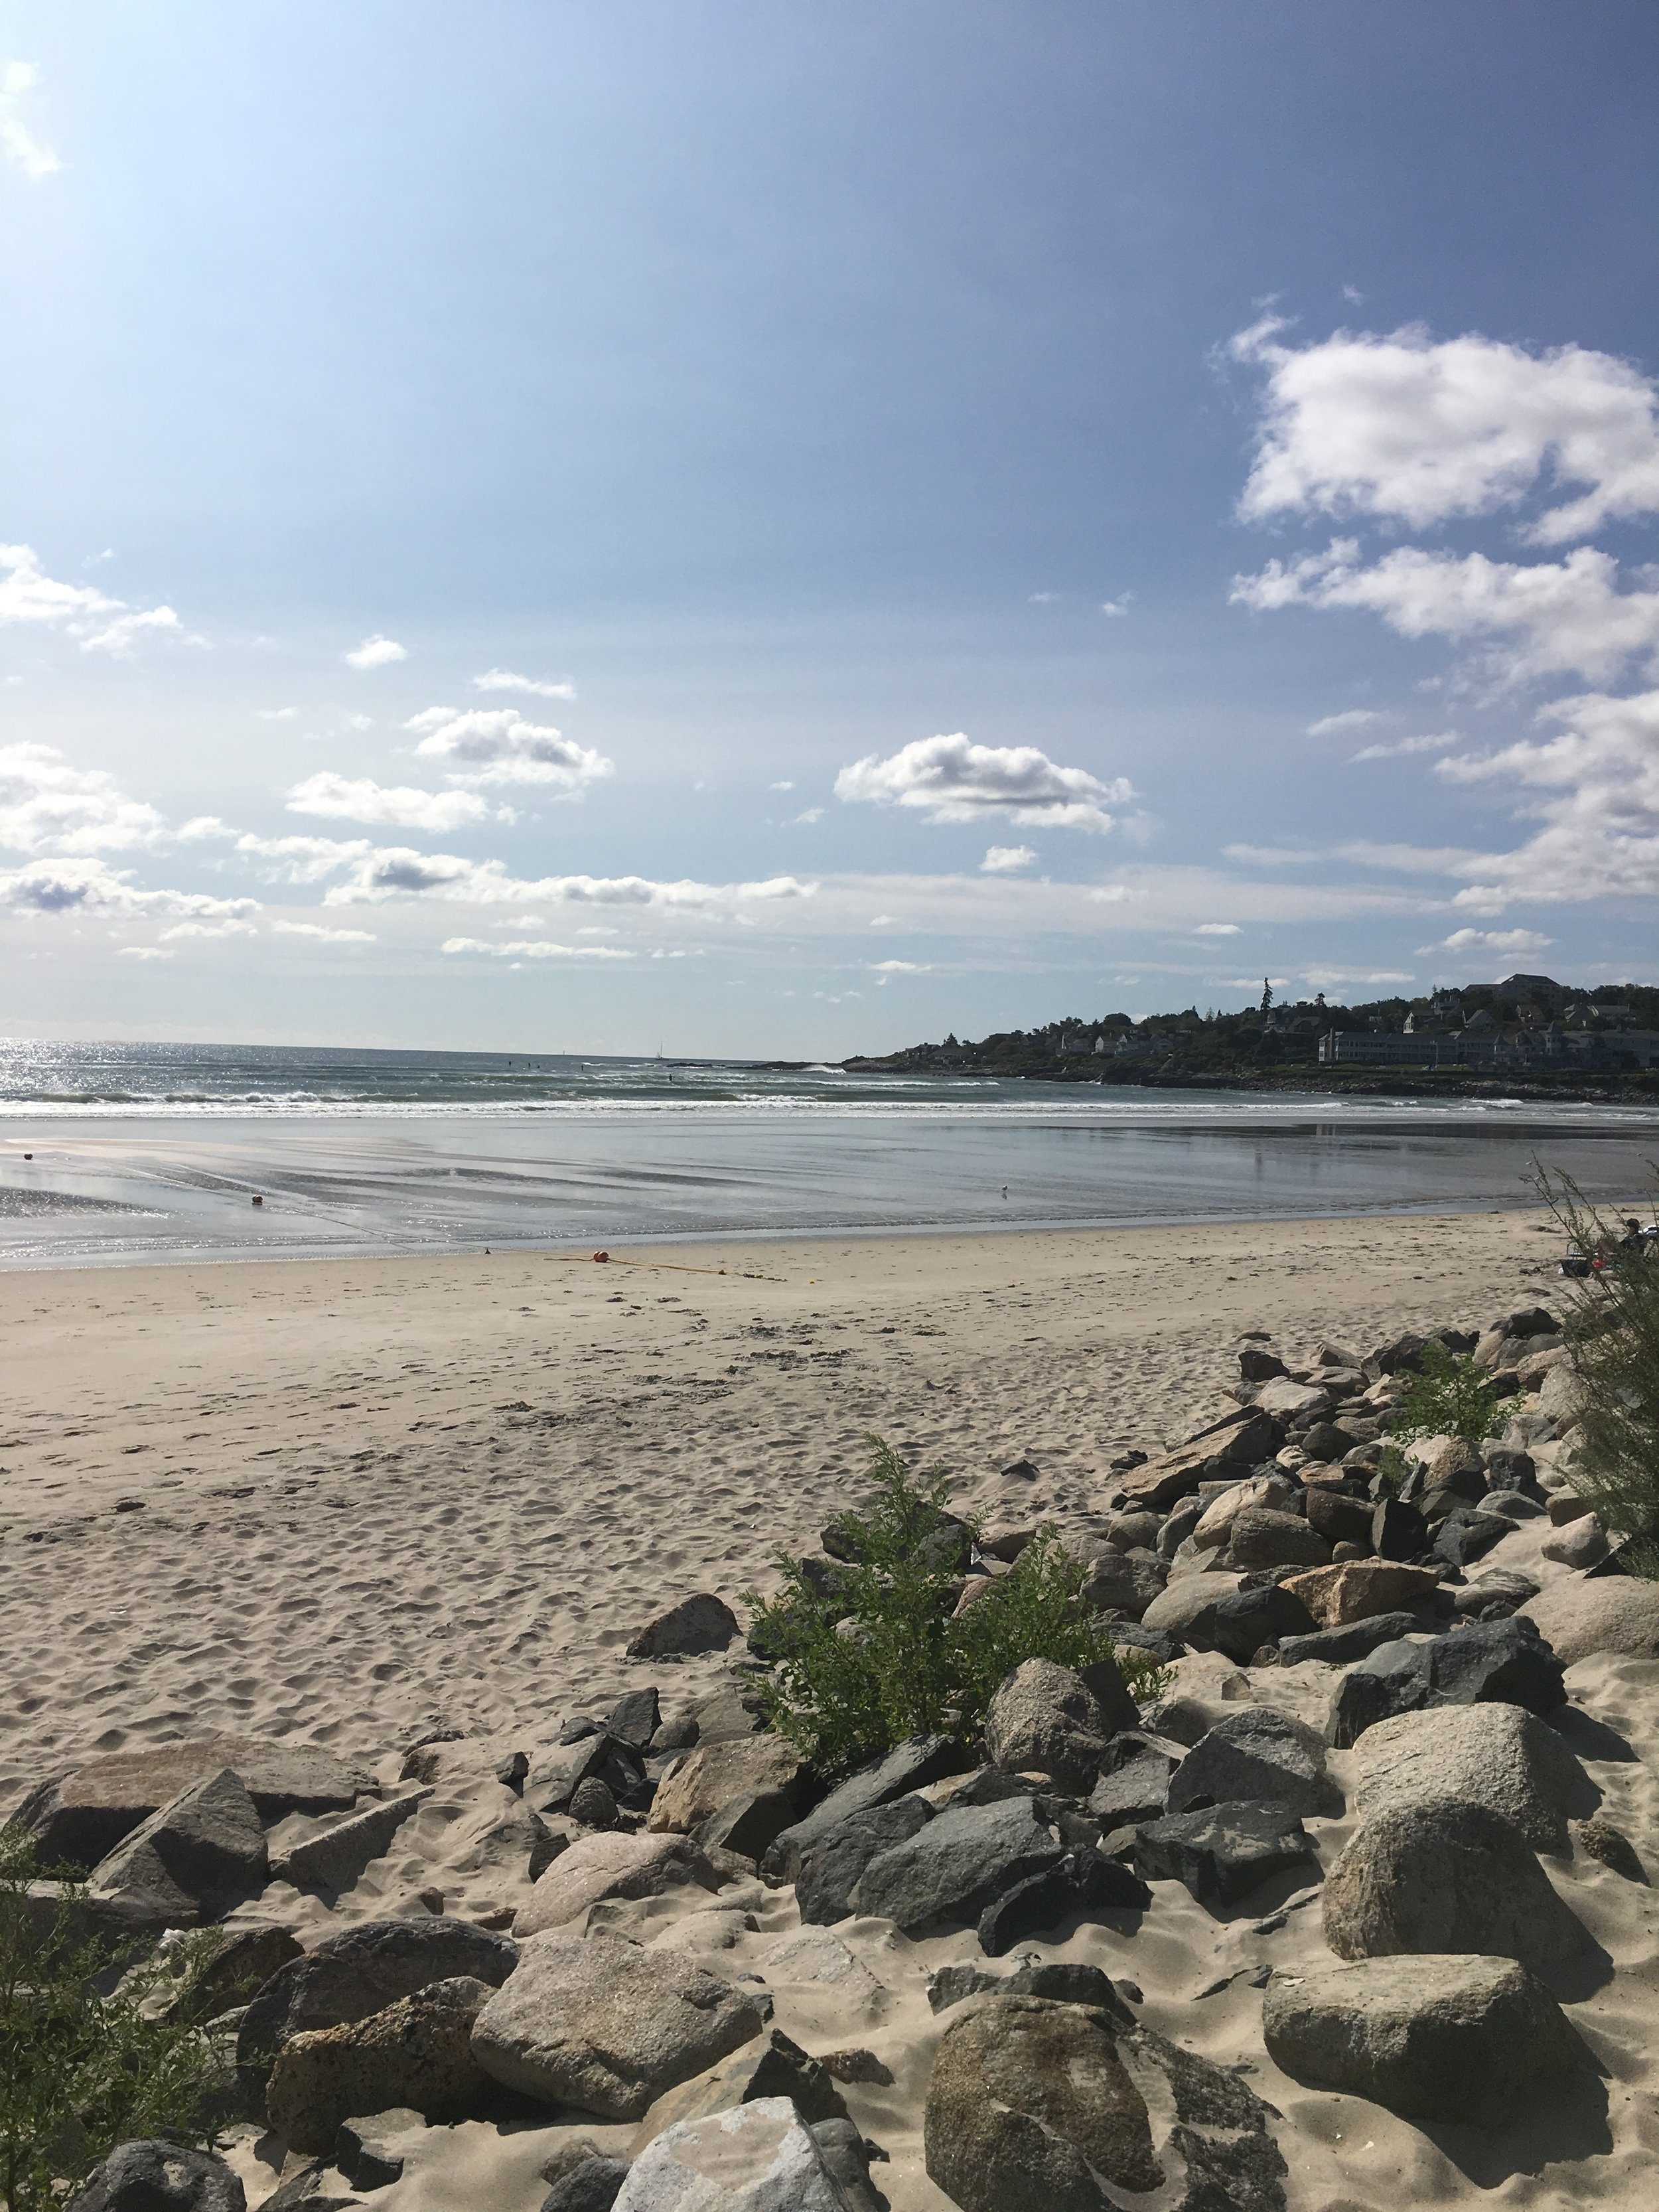 Main Beach in Ogunquit, Maine. Lovely, but very chilly time spent ocean-gazing, while wearing jeans and (!) and a jacket. Much lobster consumed.